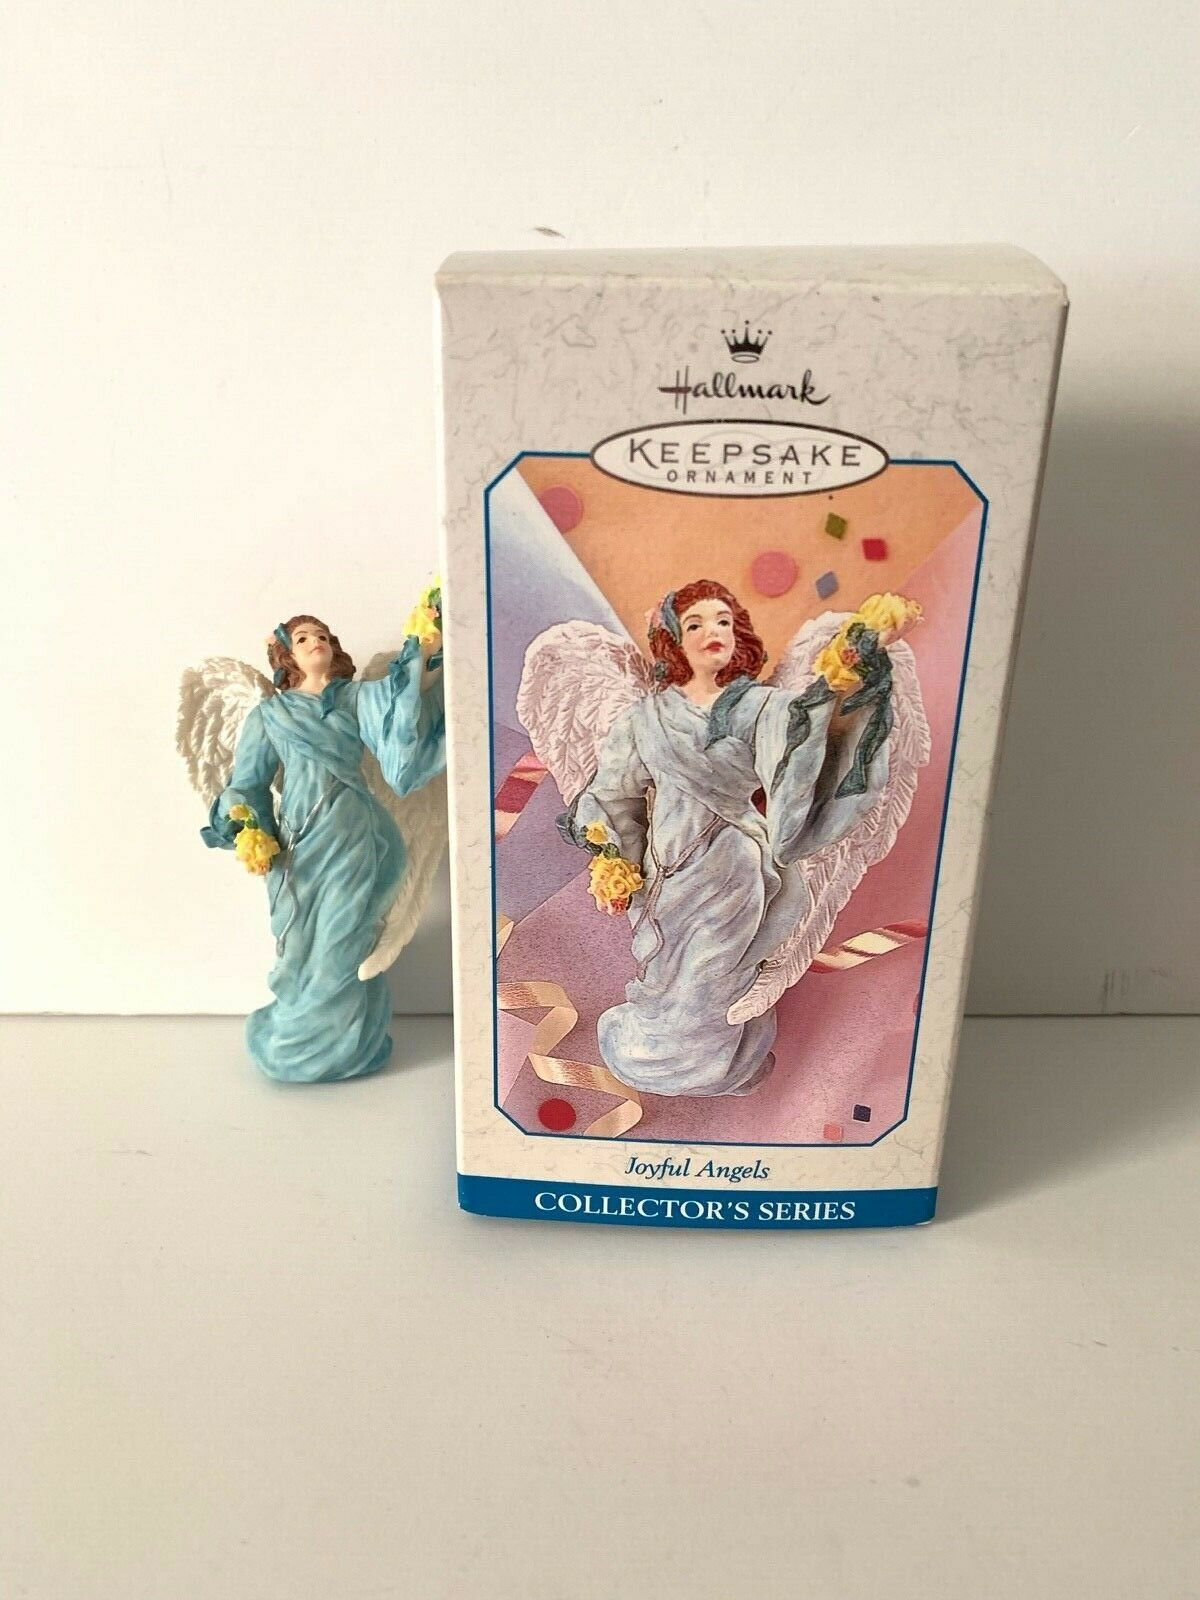 Primary image for Hallmark Keepsake Ornaments Joyful Angels 1998 Collector's Series #3 Joyce Lyle